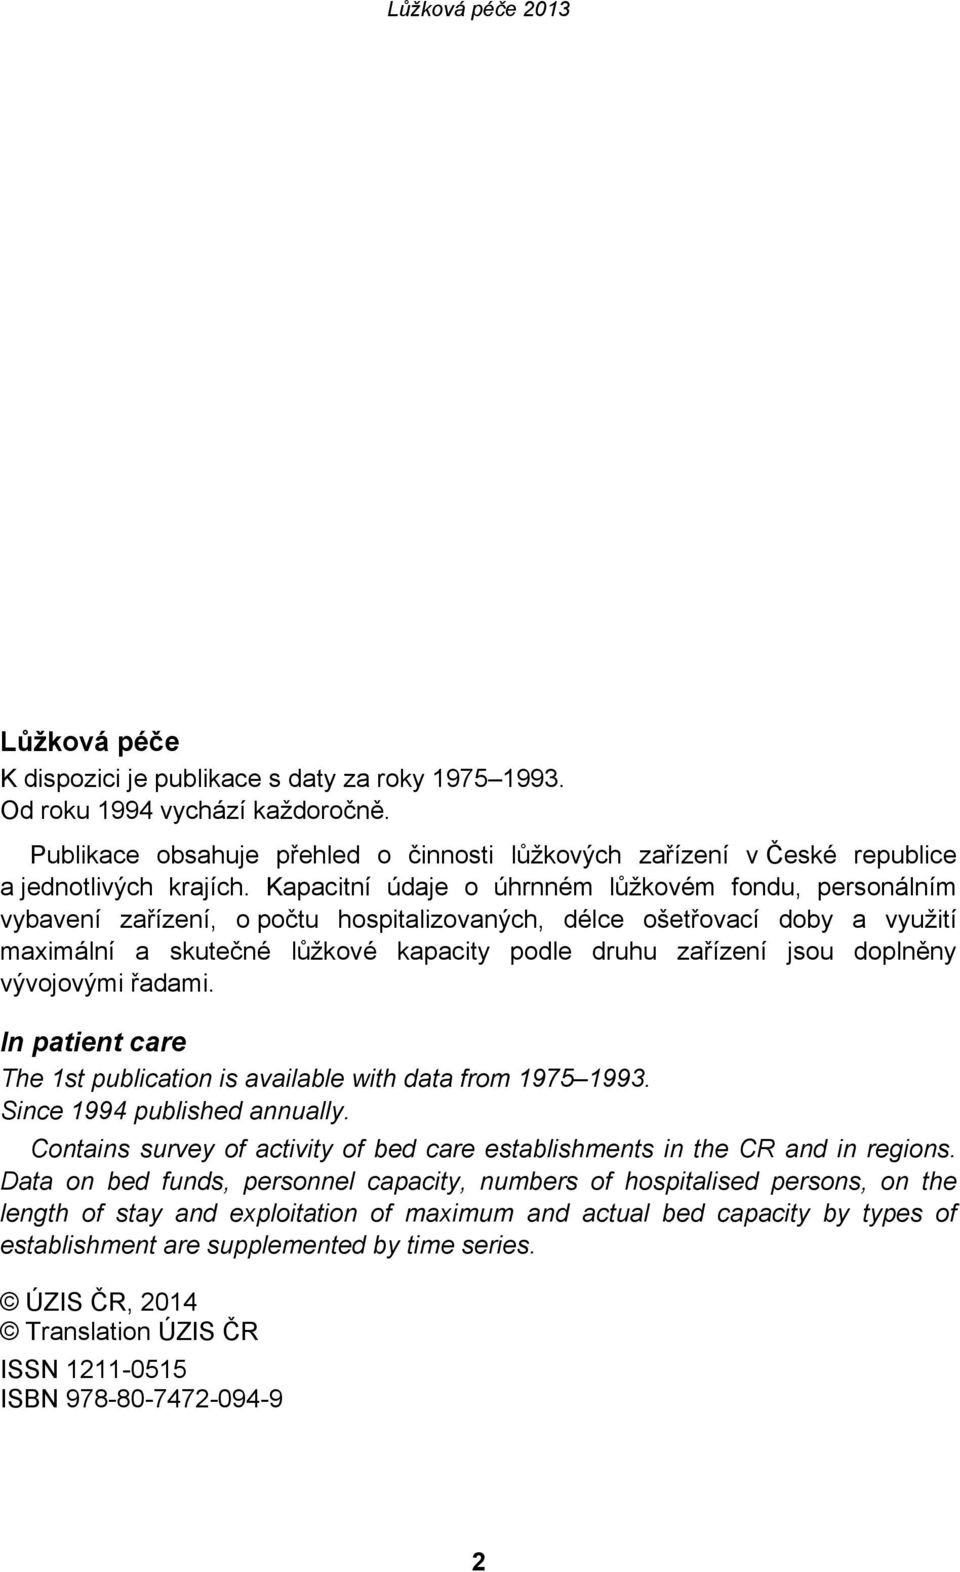 doplněny vývojovými řadami. In patient care The 1st publication is available with data from 1975 1993. Since 1994 published annually.